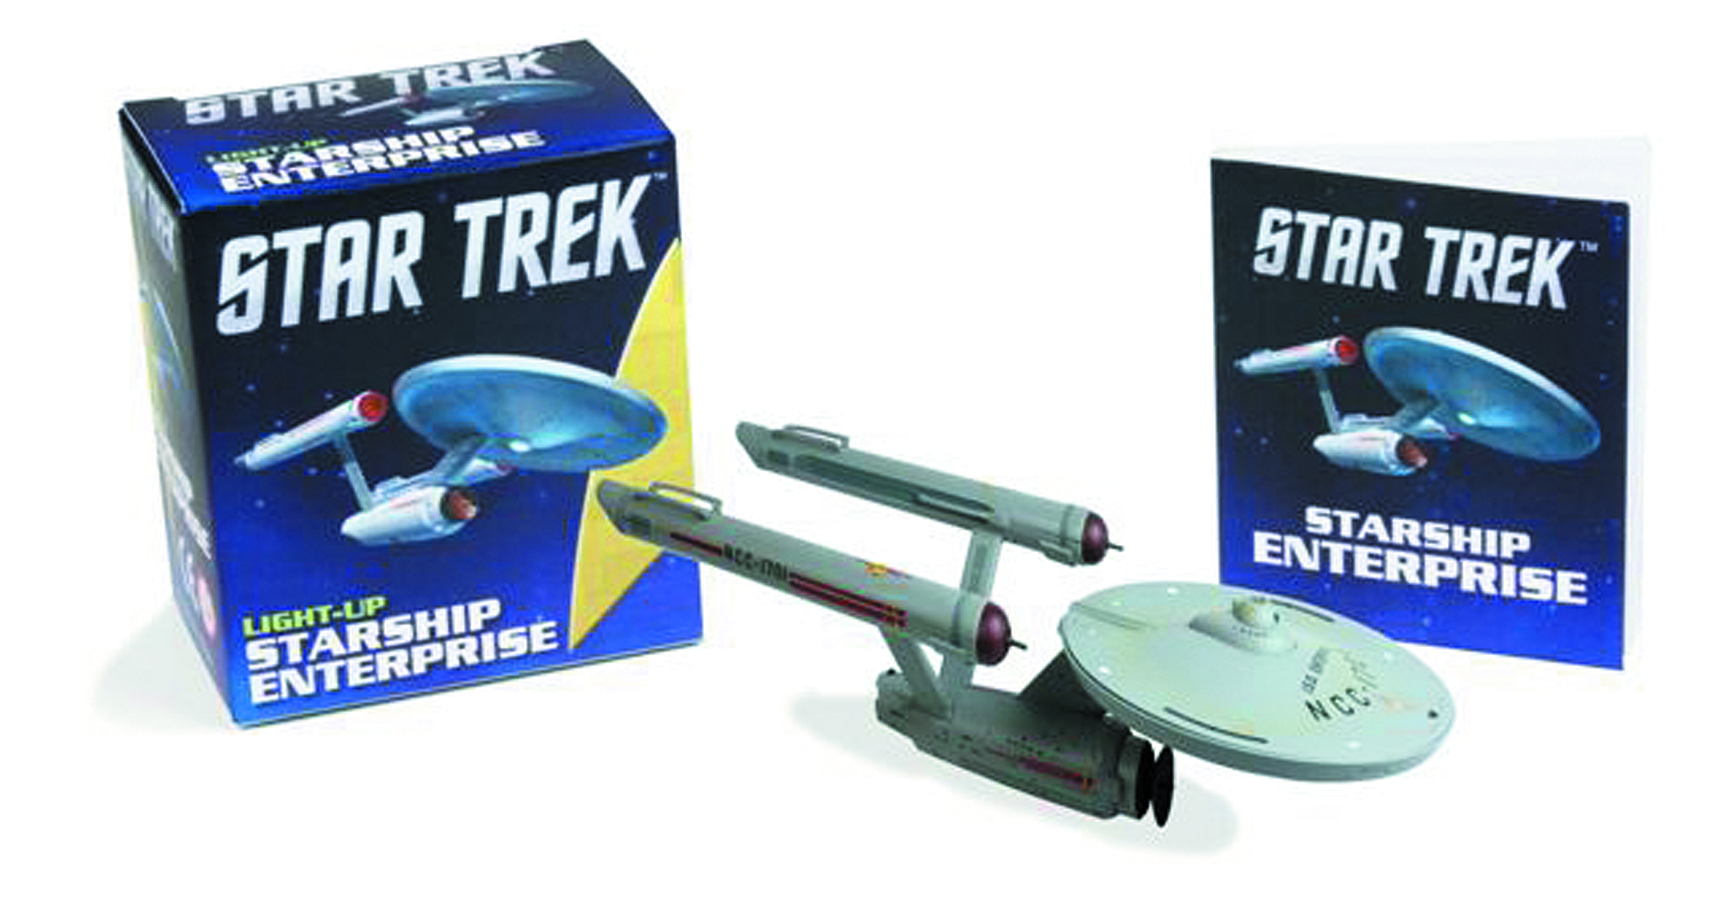 STAR TREK LIGHT UP STARSHIP ENTERPRISE KIT